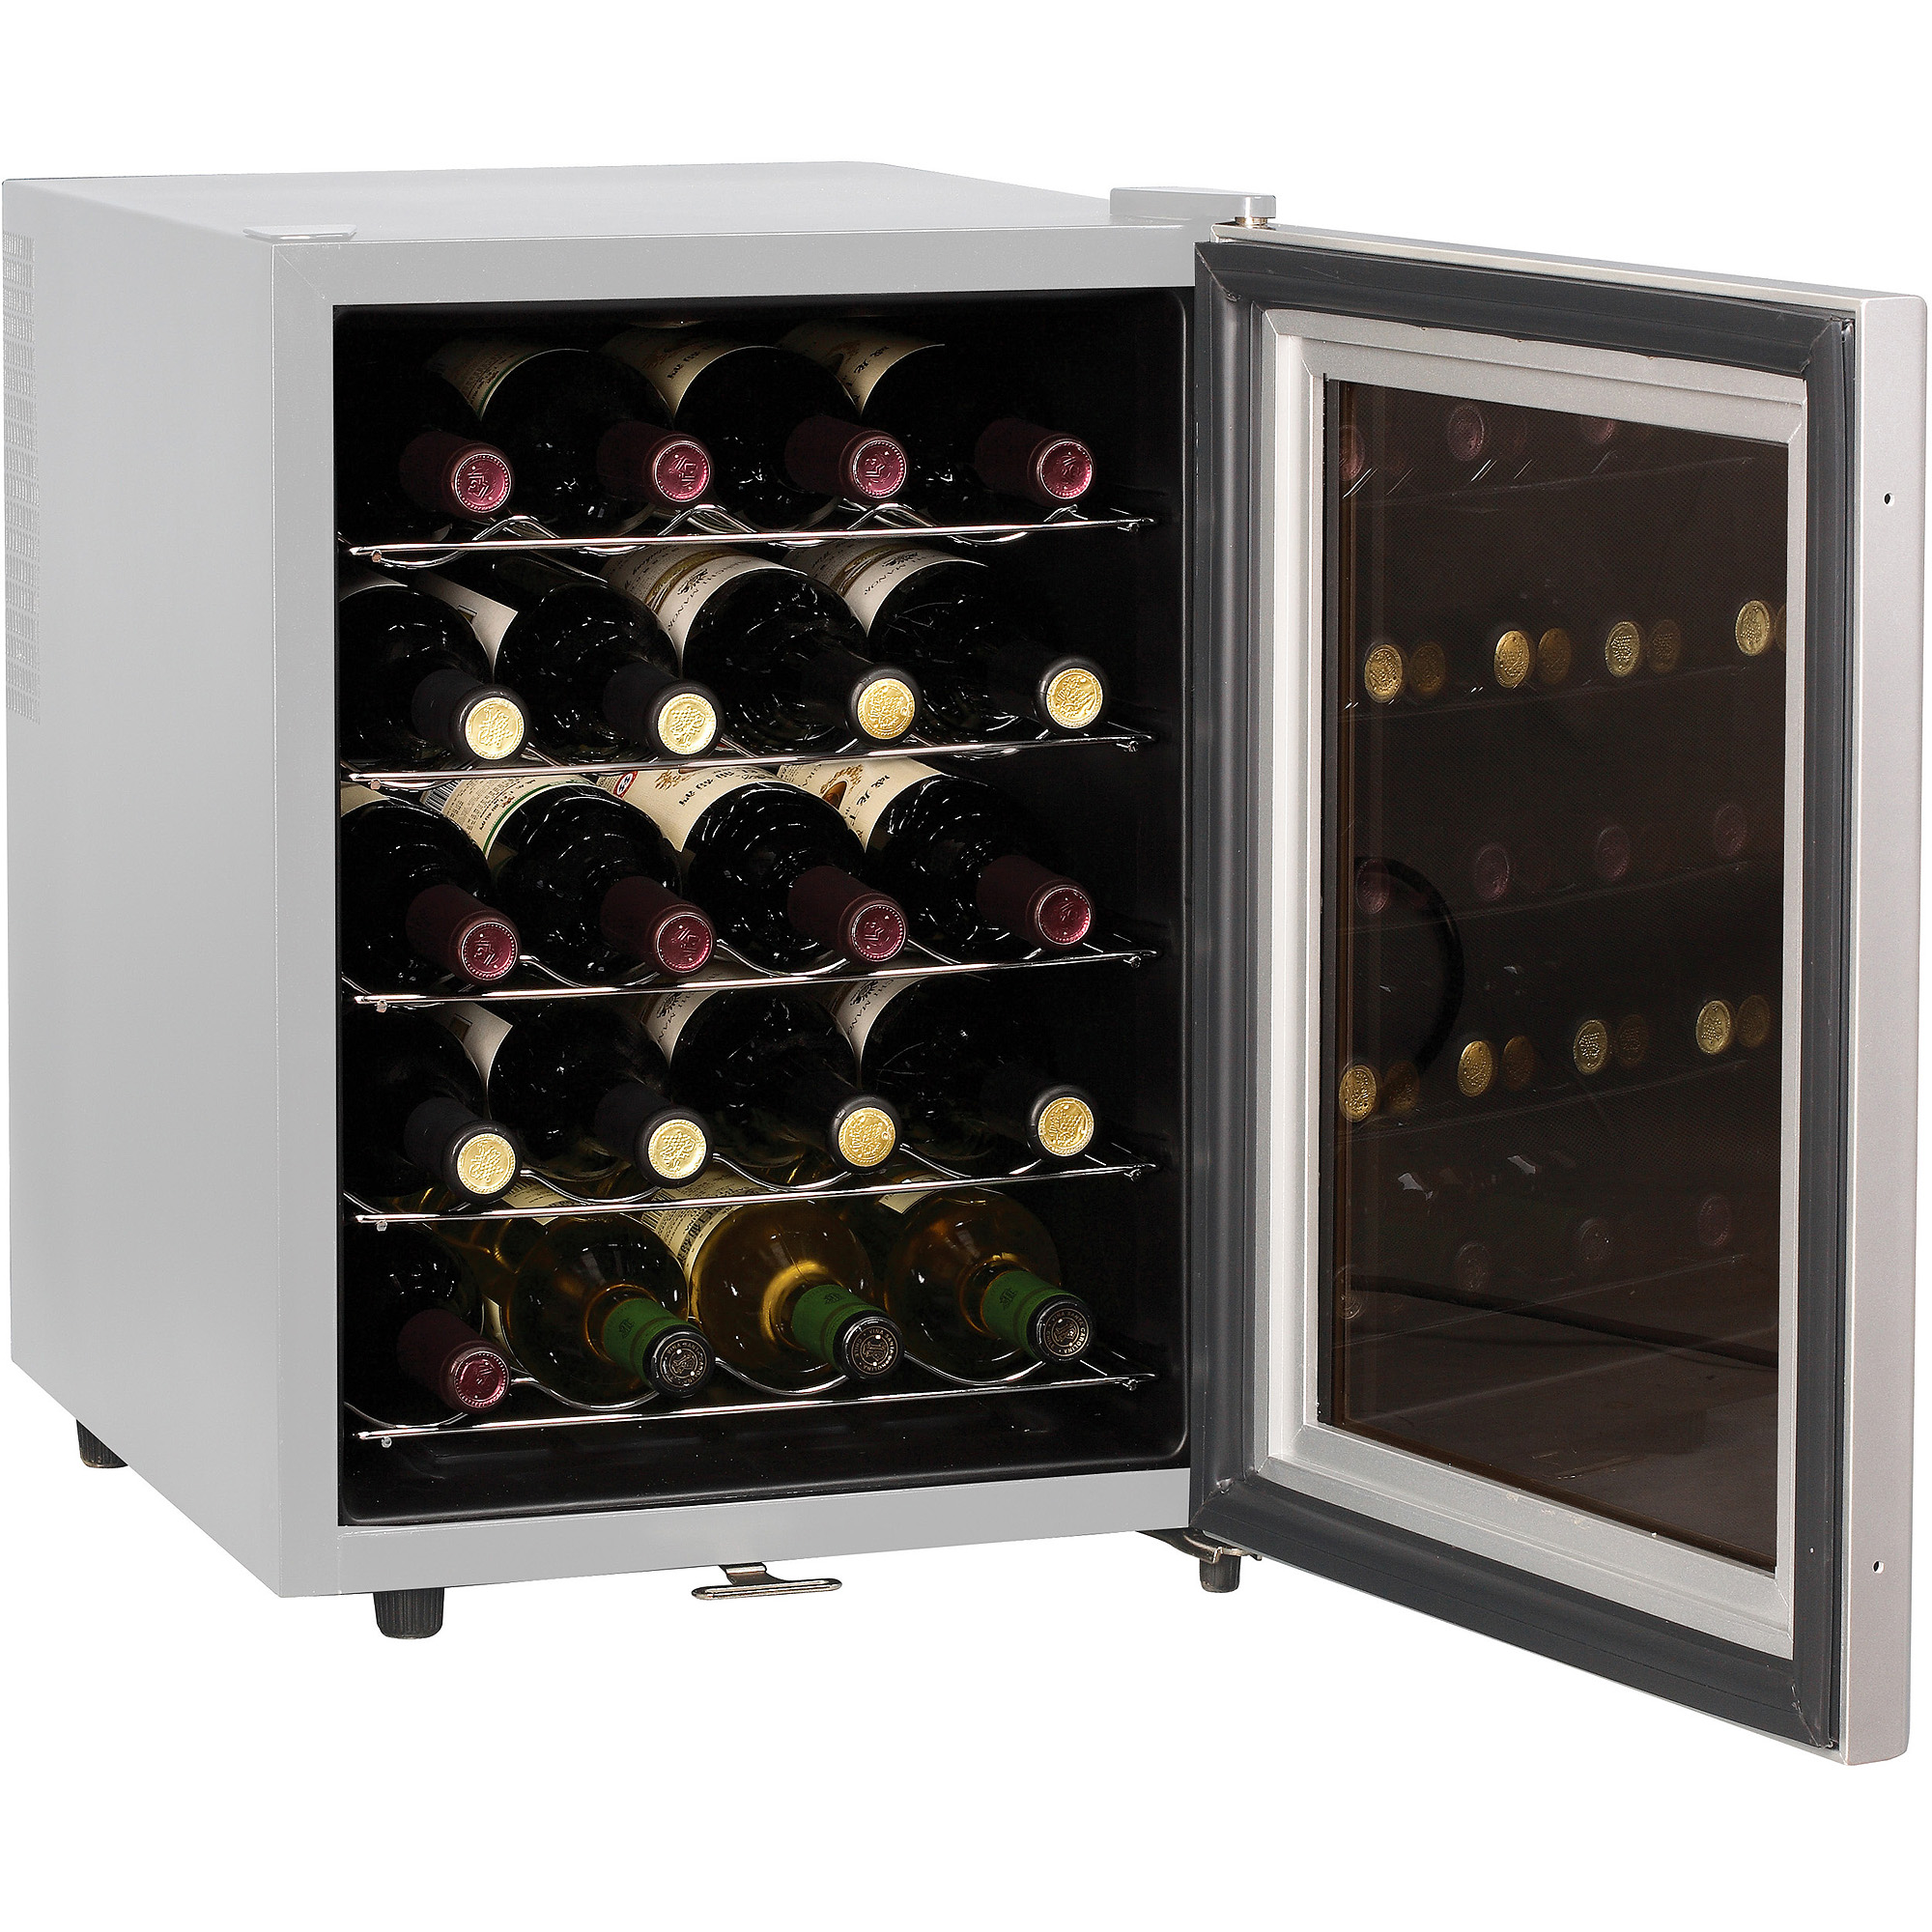 Sunpentown WC-20SD ThermoElectric 20-Bottle Wine Cooler